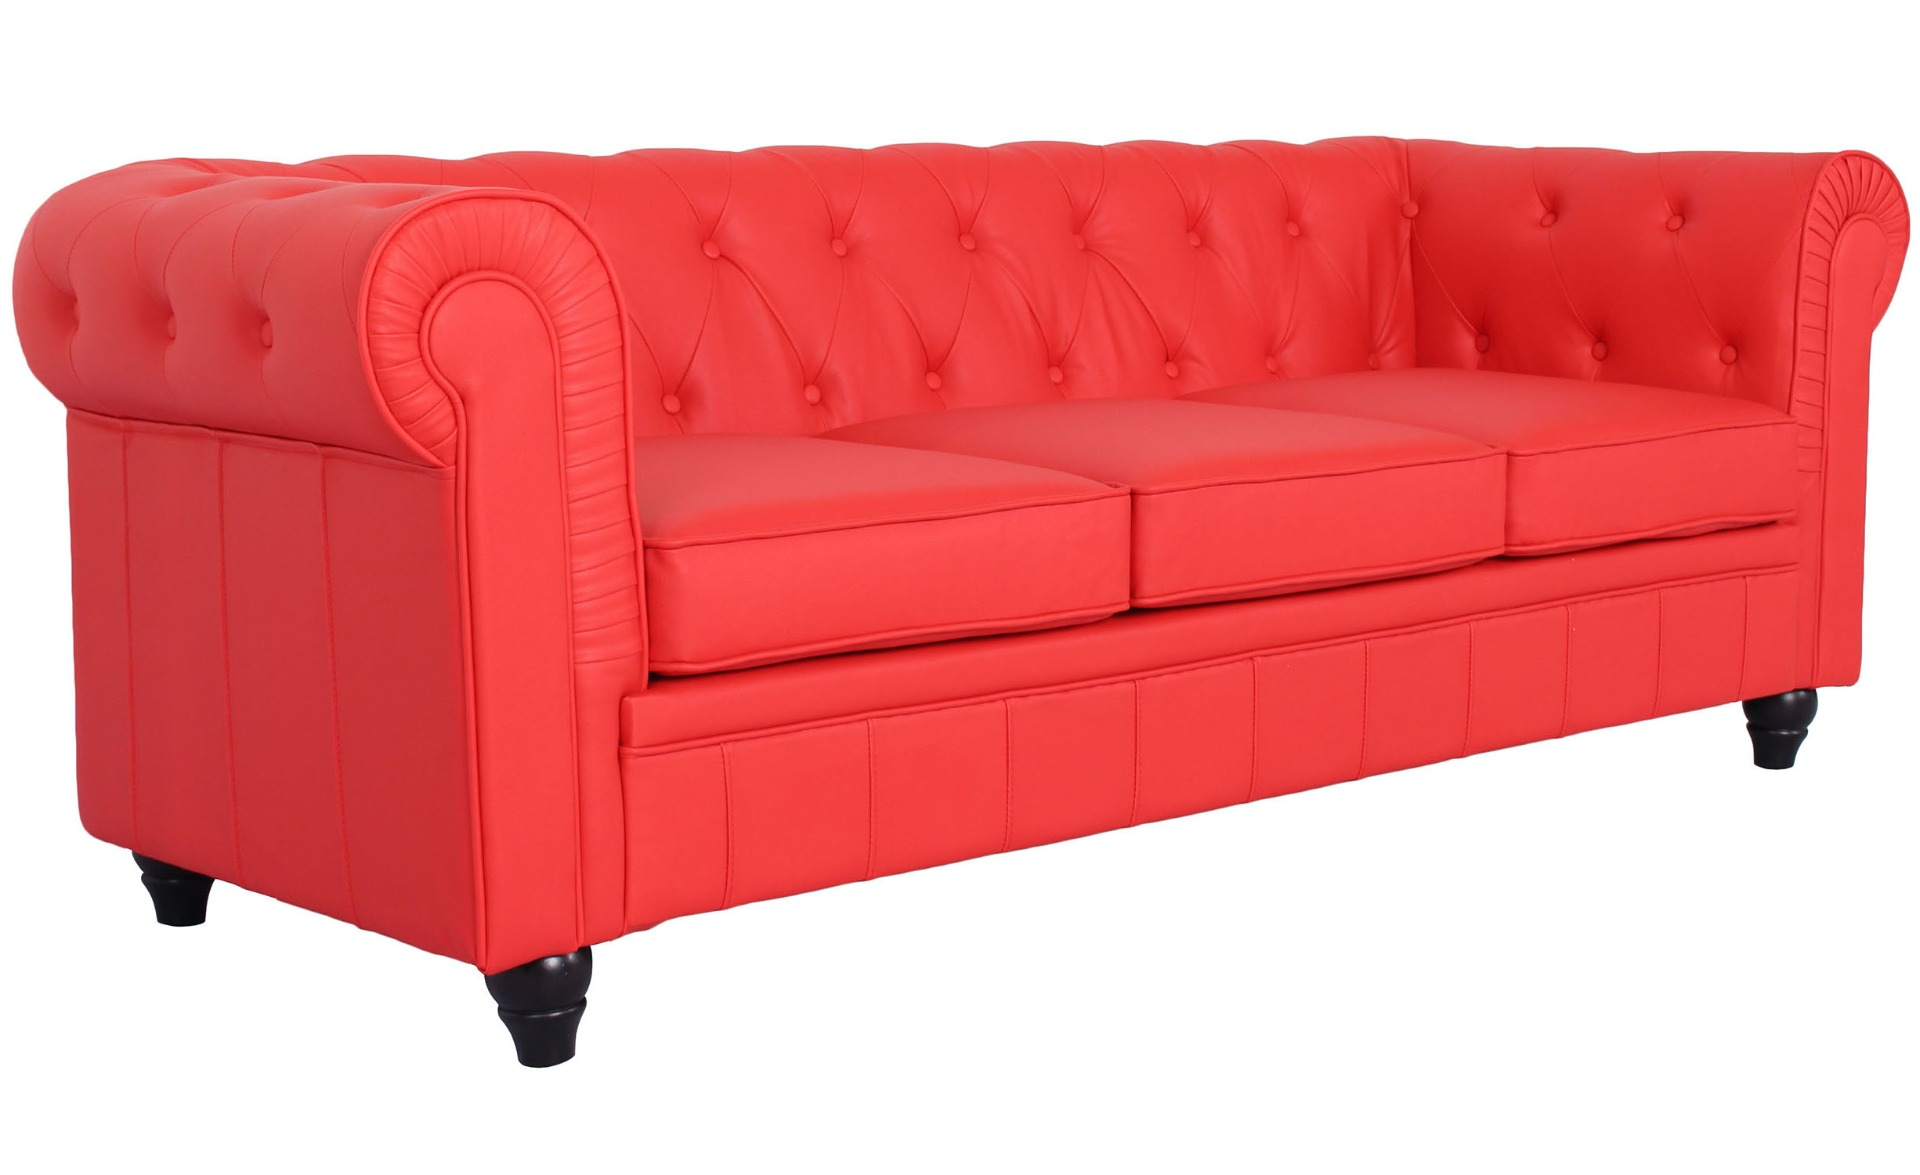 Grand canapé 3 places Chesterfield Rouge